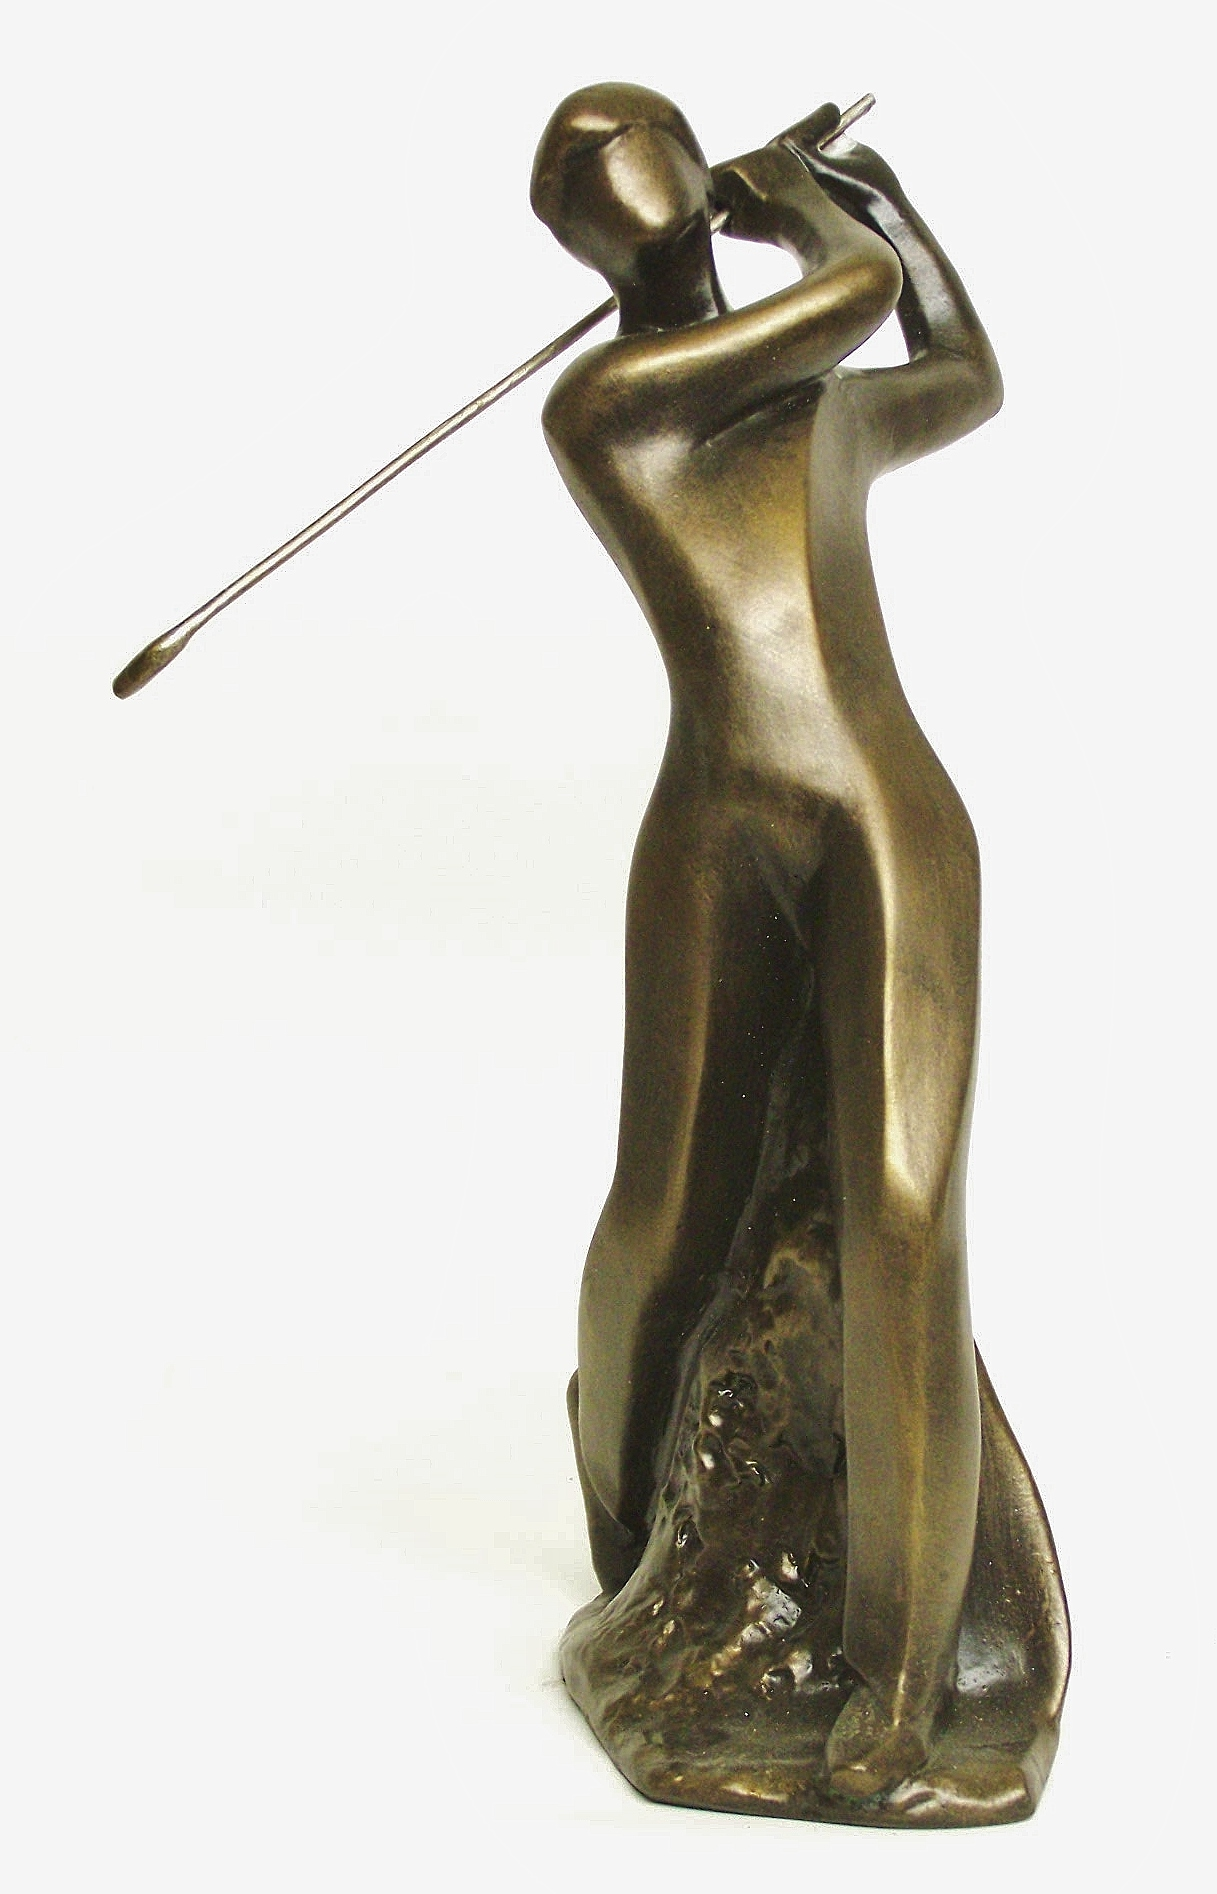 Small modern sculpture featuring a golf player